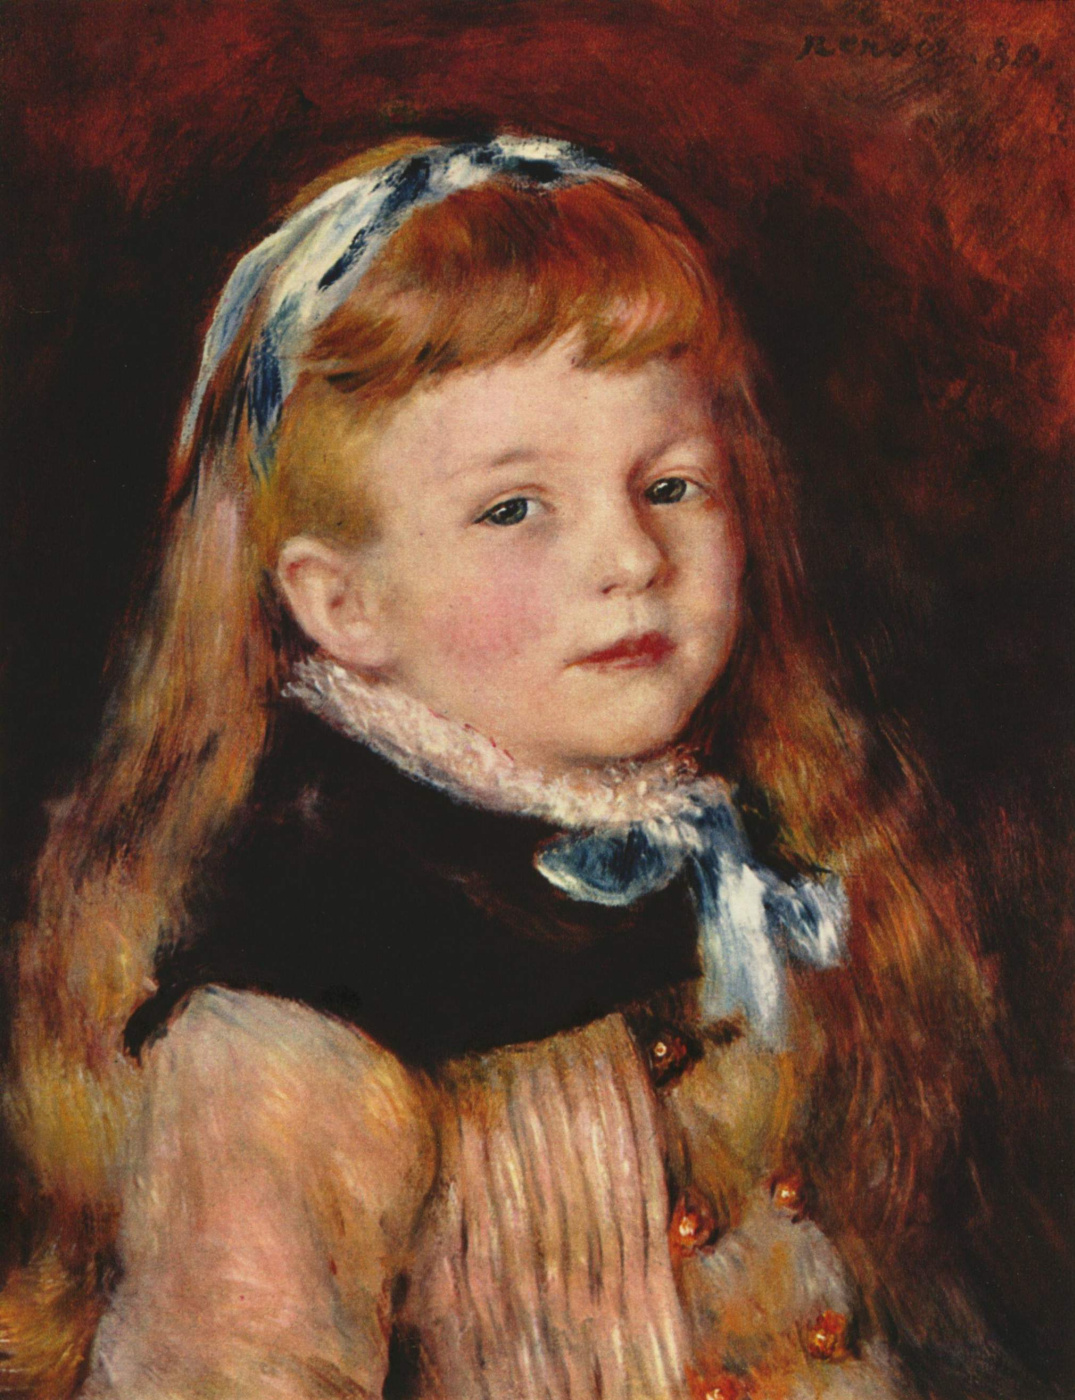 Pierre-Auguste Renoir. Grimpel lady with blue ribbon in hair